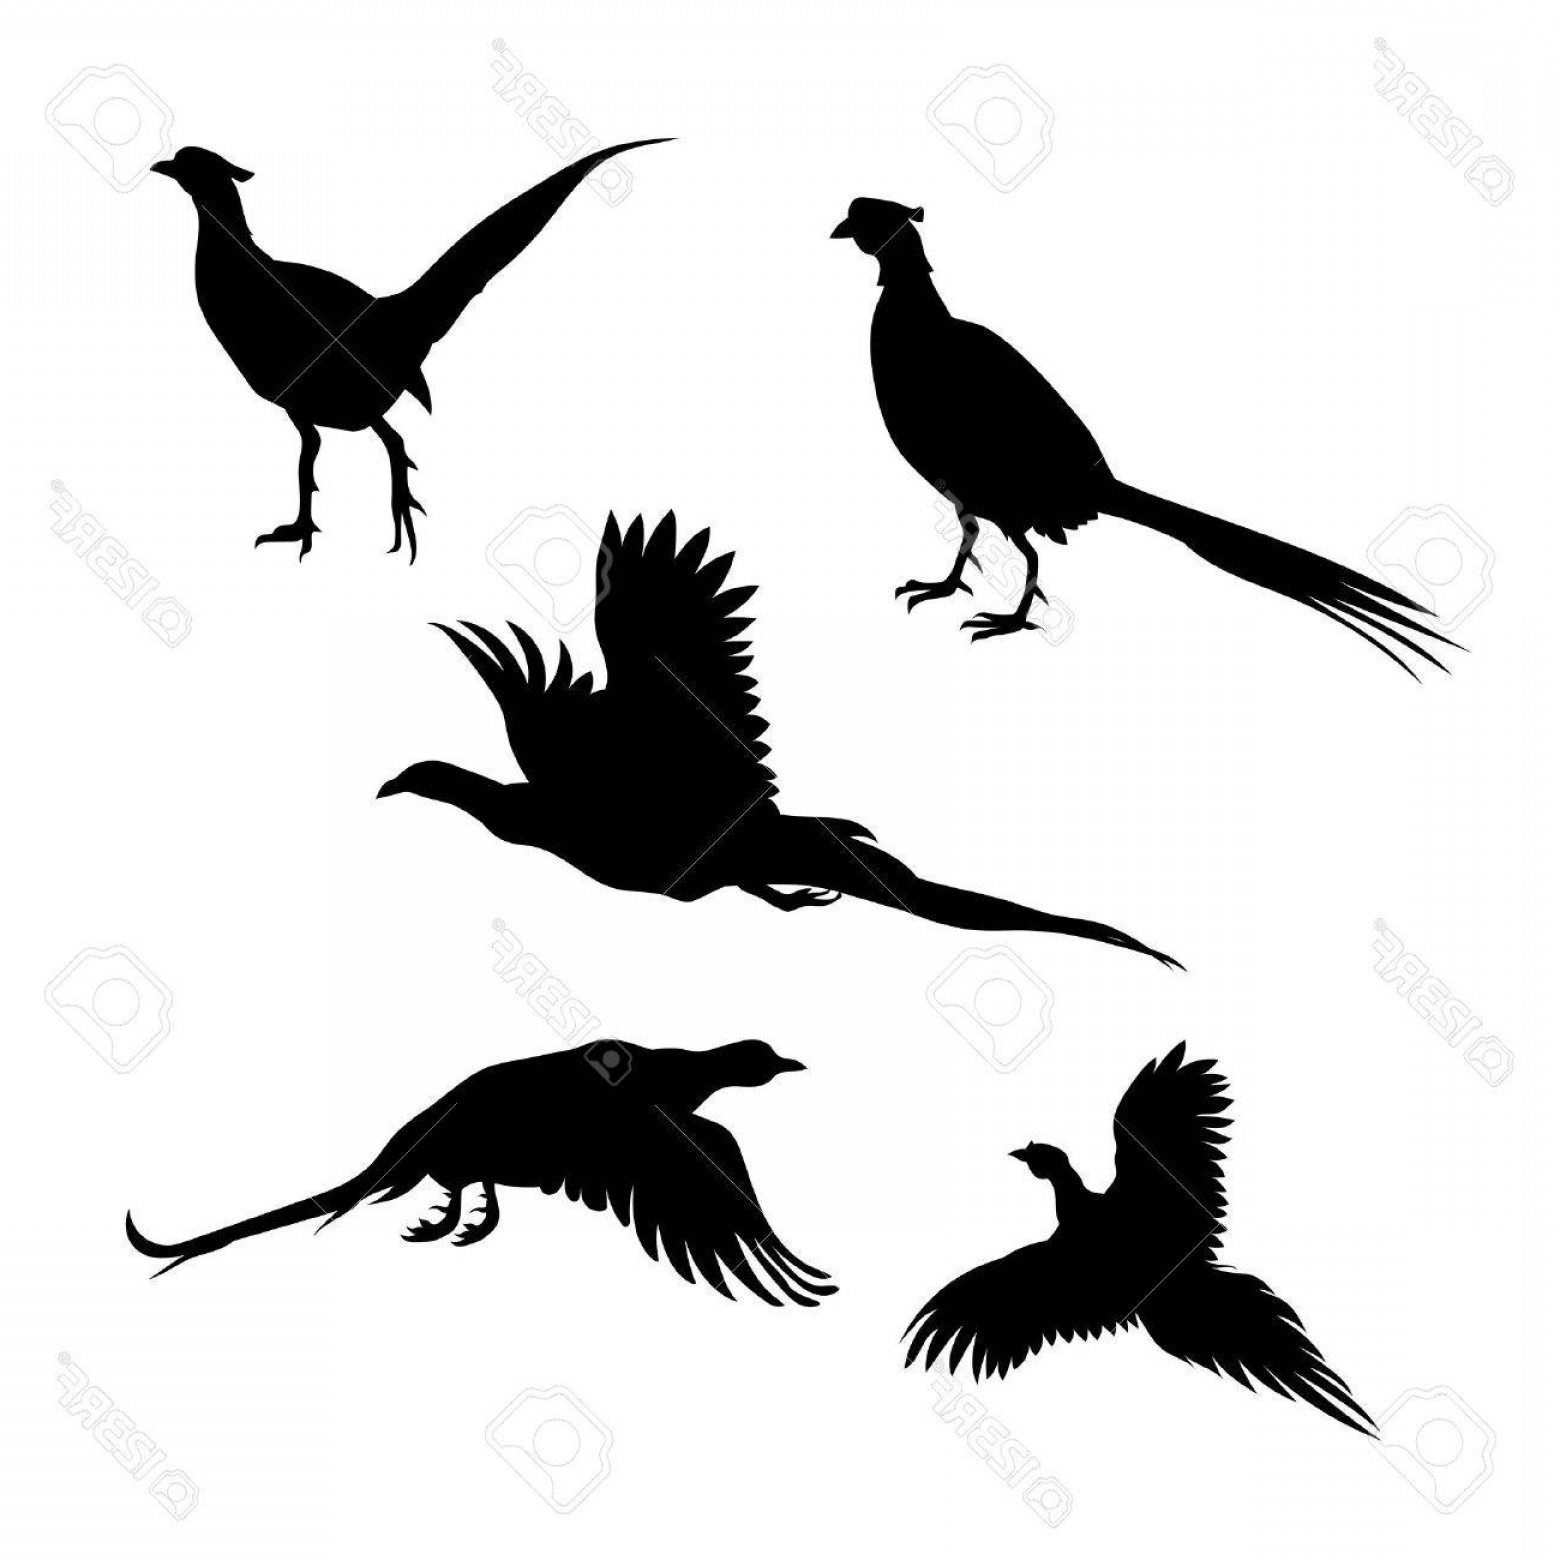 Photostock Vector Bird Pheasant Vector Icons And Silhouettes.